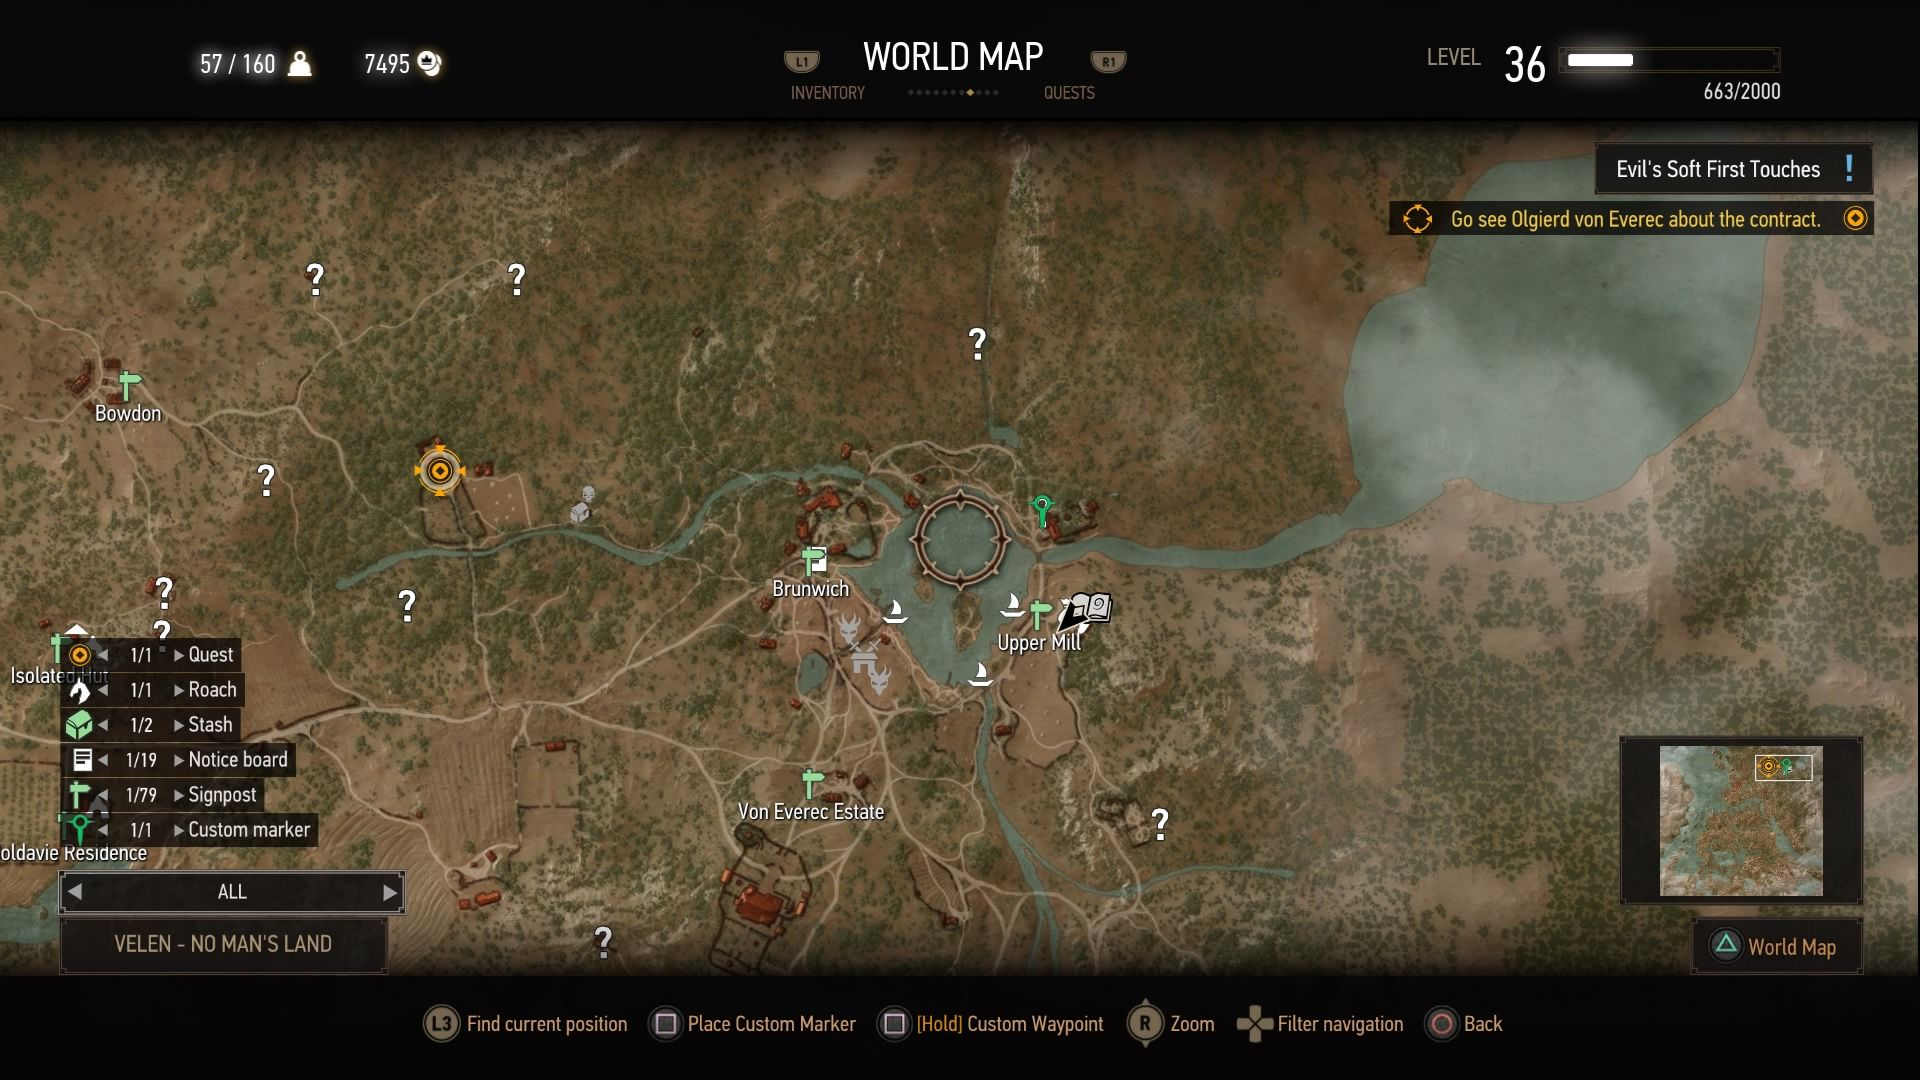 The witcher 3 wild hunt hearts of stone screenshots for main new area on the map for hearts of stone missions and places to explore gumiabroncs Gallery